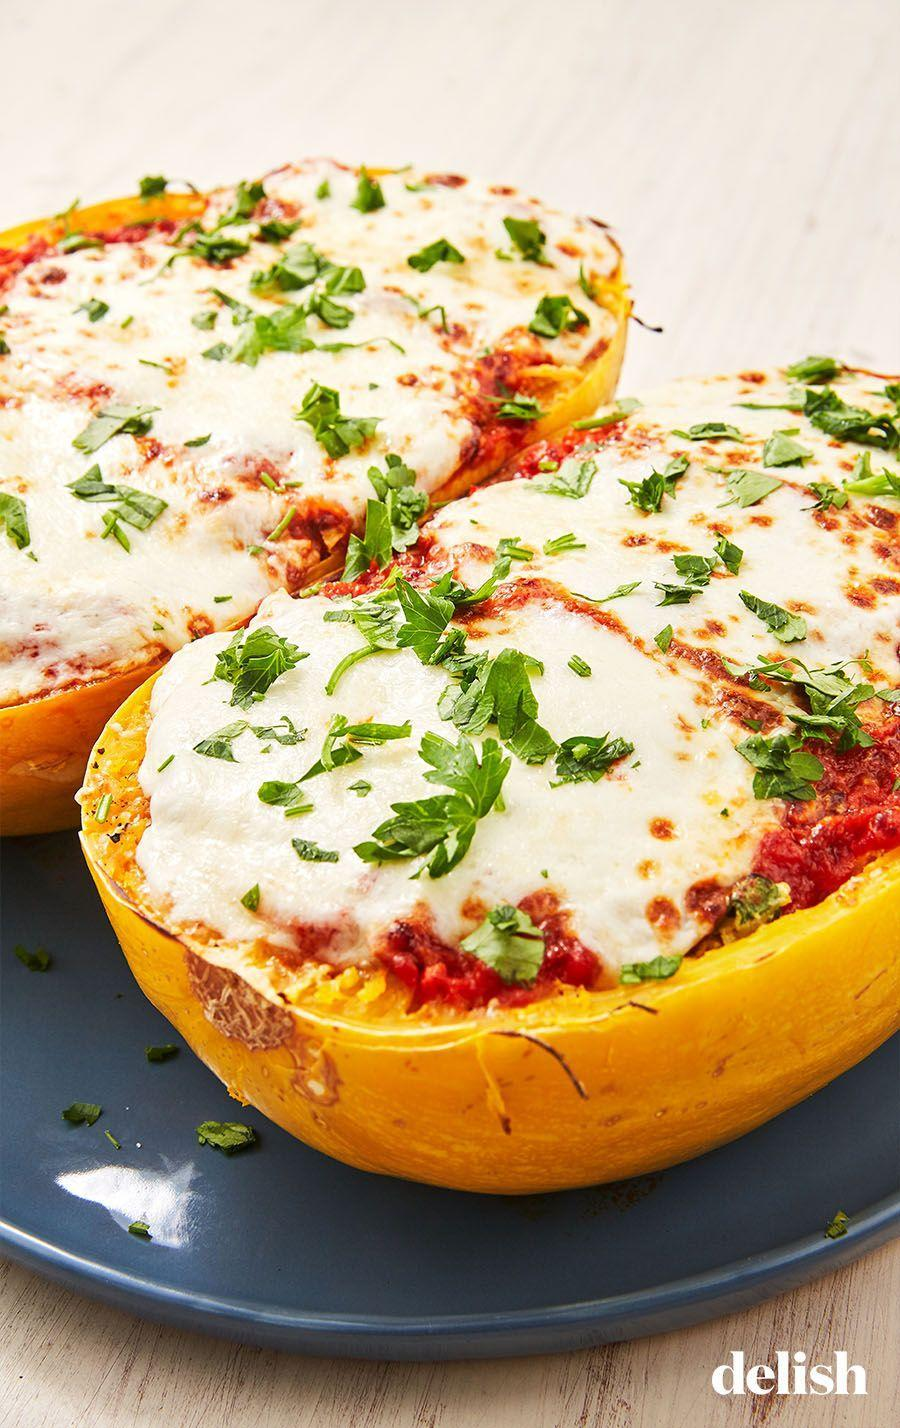 """<p>Put that squash to good use with a cheesy, saucy dinner.</p><p>Get the recipe from <a href=""""https://www.delish.com/cooking/recipe-ideas/a27345958/instant-pot-spaghetti-squash-recipe/"""" rel=""""nofollow noopener"""" target=""""_blank"""" data-ylk=""""slk:Delish"""" class=""""link rapid-noclick-resp"""">Delish</a>.</p>"""